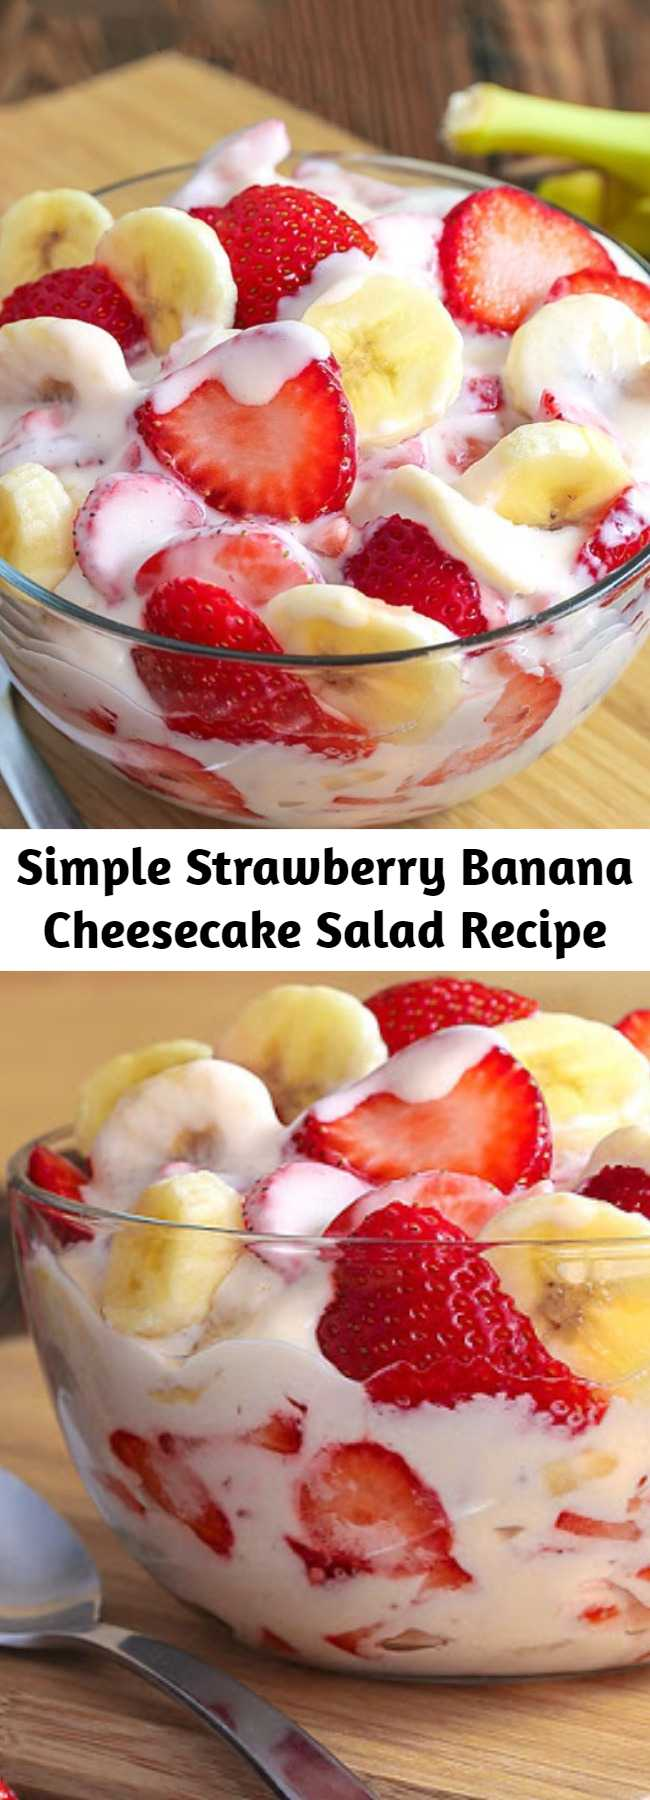 Simple Strawberry Banana Cheesecake Salad Recipe - Simple Strawberry Banana Cheesecake Salad recipe comes together with just 6 ingredients. Rich and creamy cheesecake filling is folded into luscious strawberries and sweet banana to create the most amazing, glorious fruit salad ever! #strawberries #potluckfood